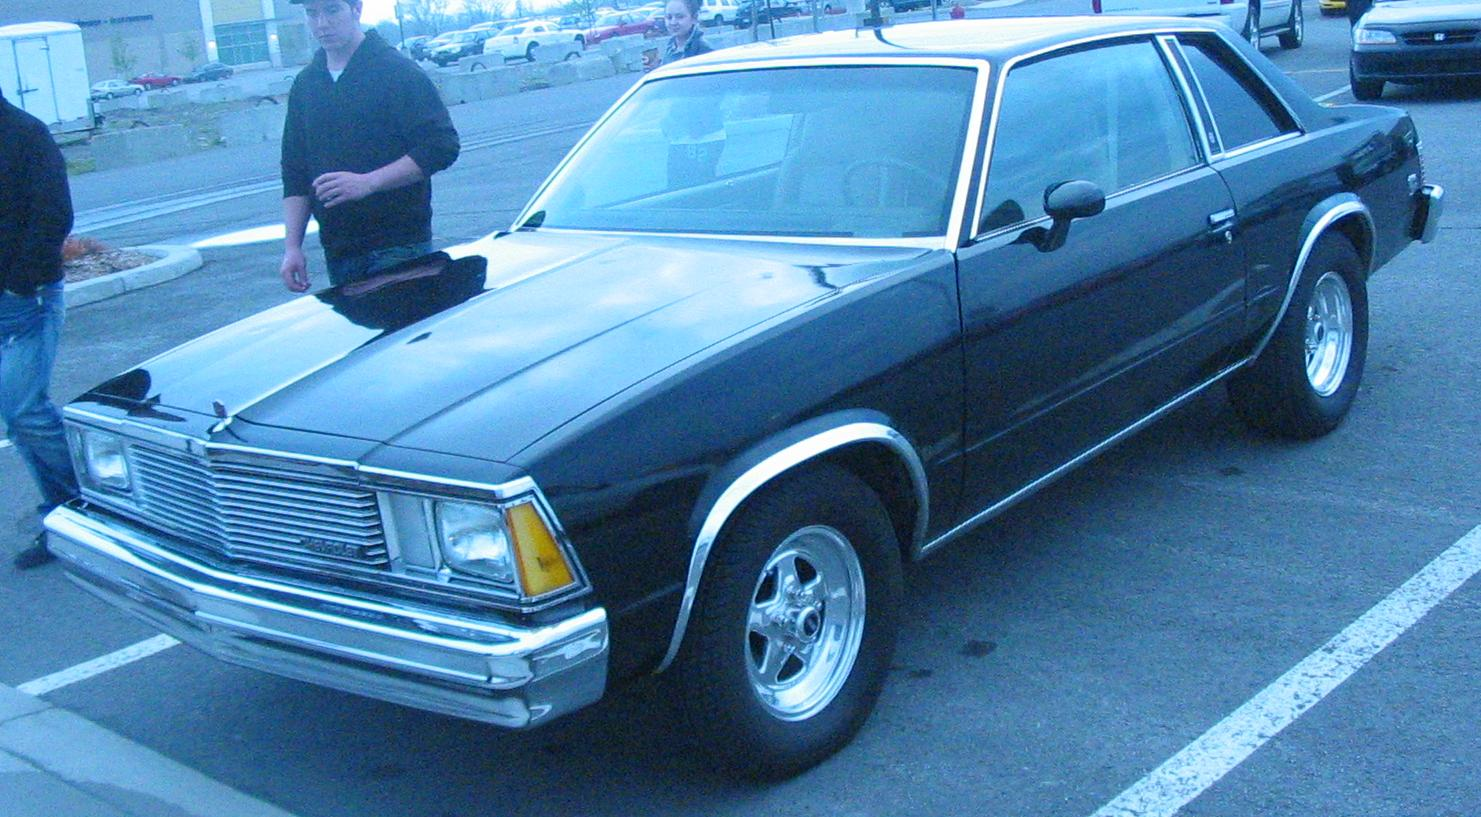 File:Tuned '82 Chevrolet Malibu Coupe (Les chauds vendredis '12).JPG - Wikimedia Commons